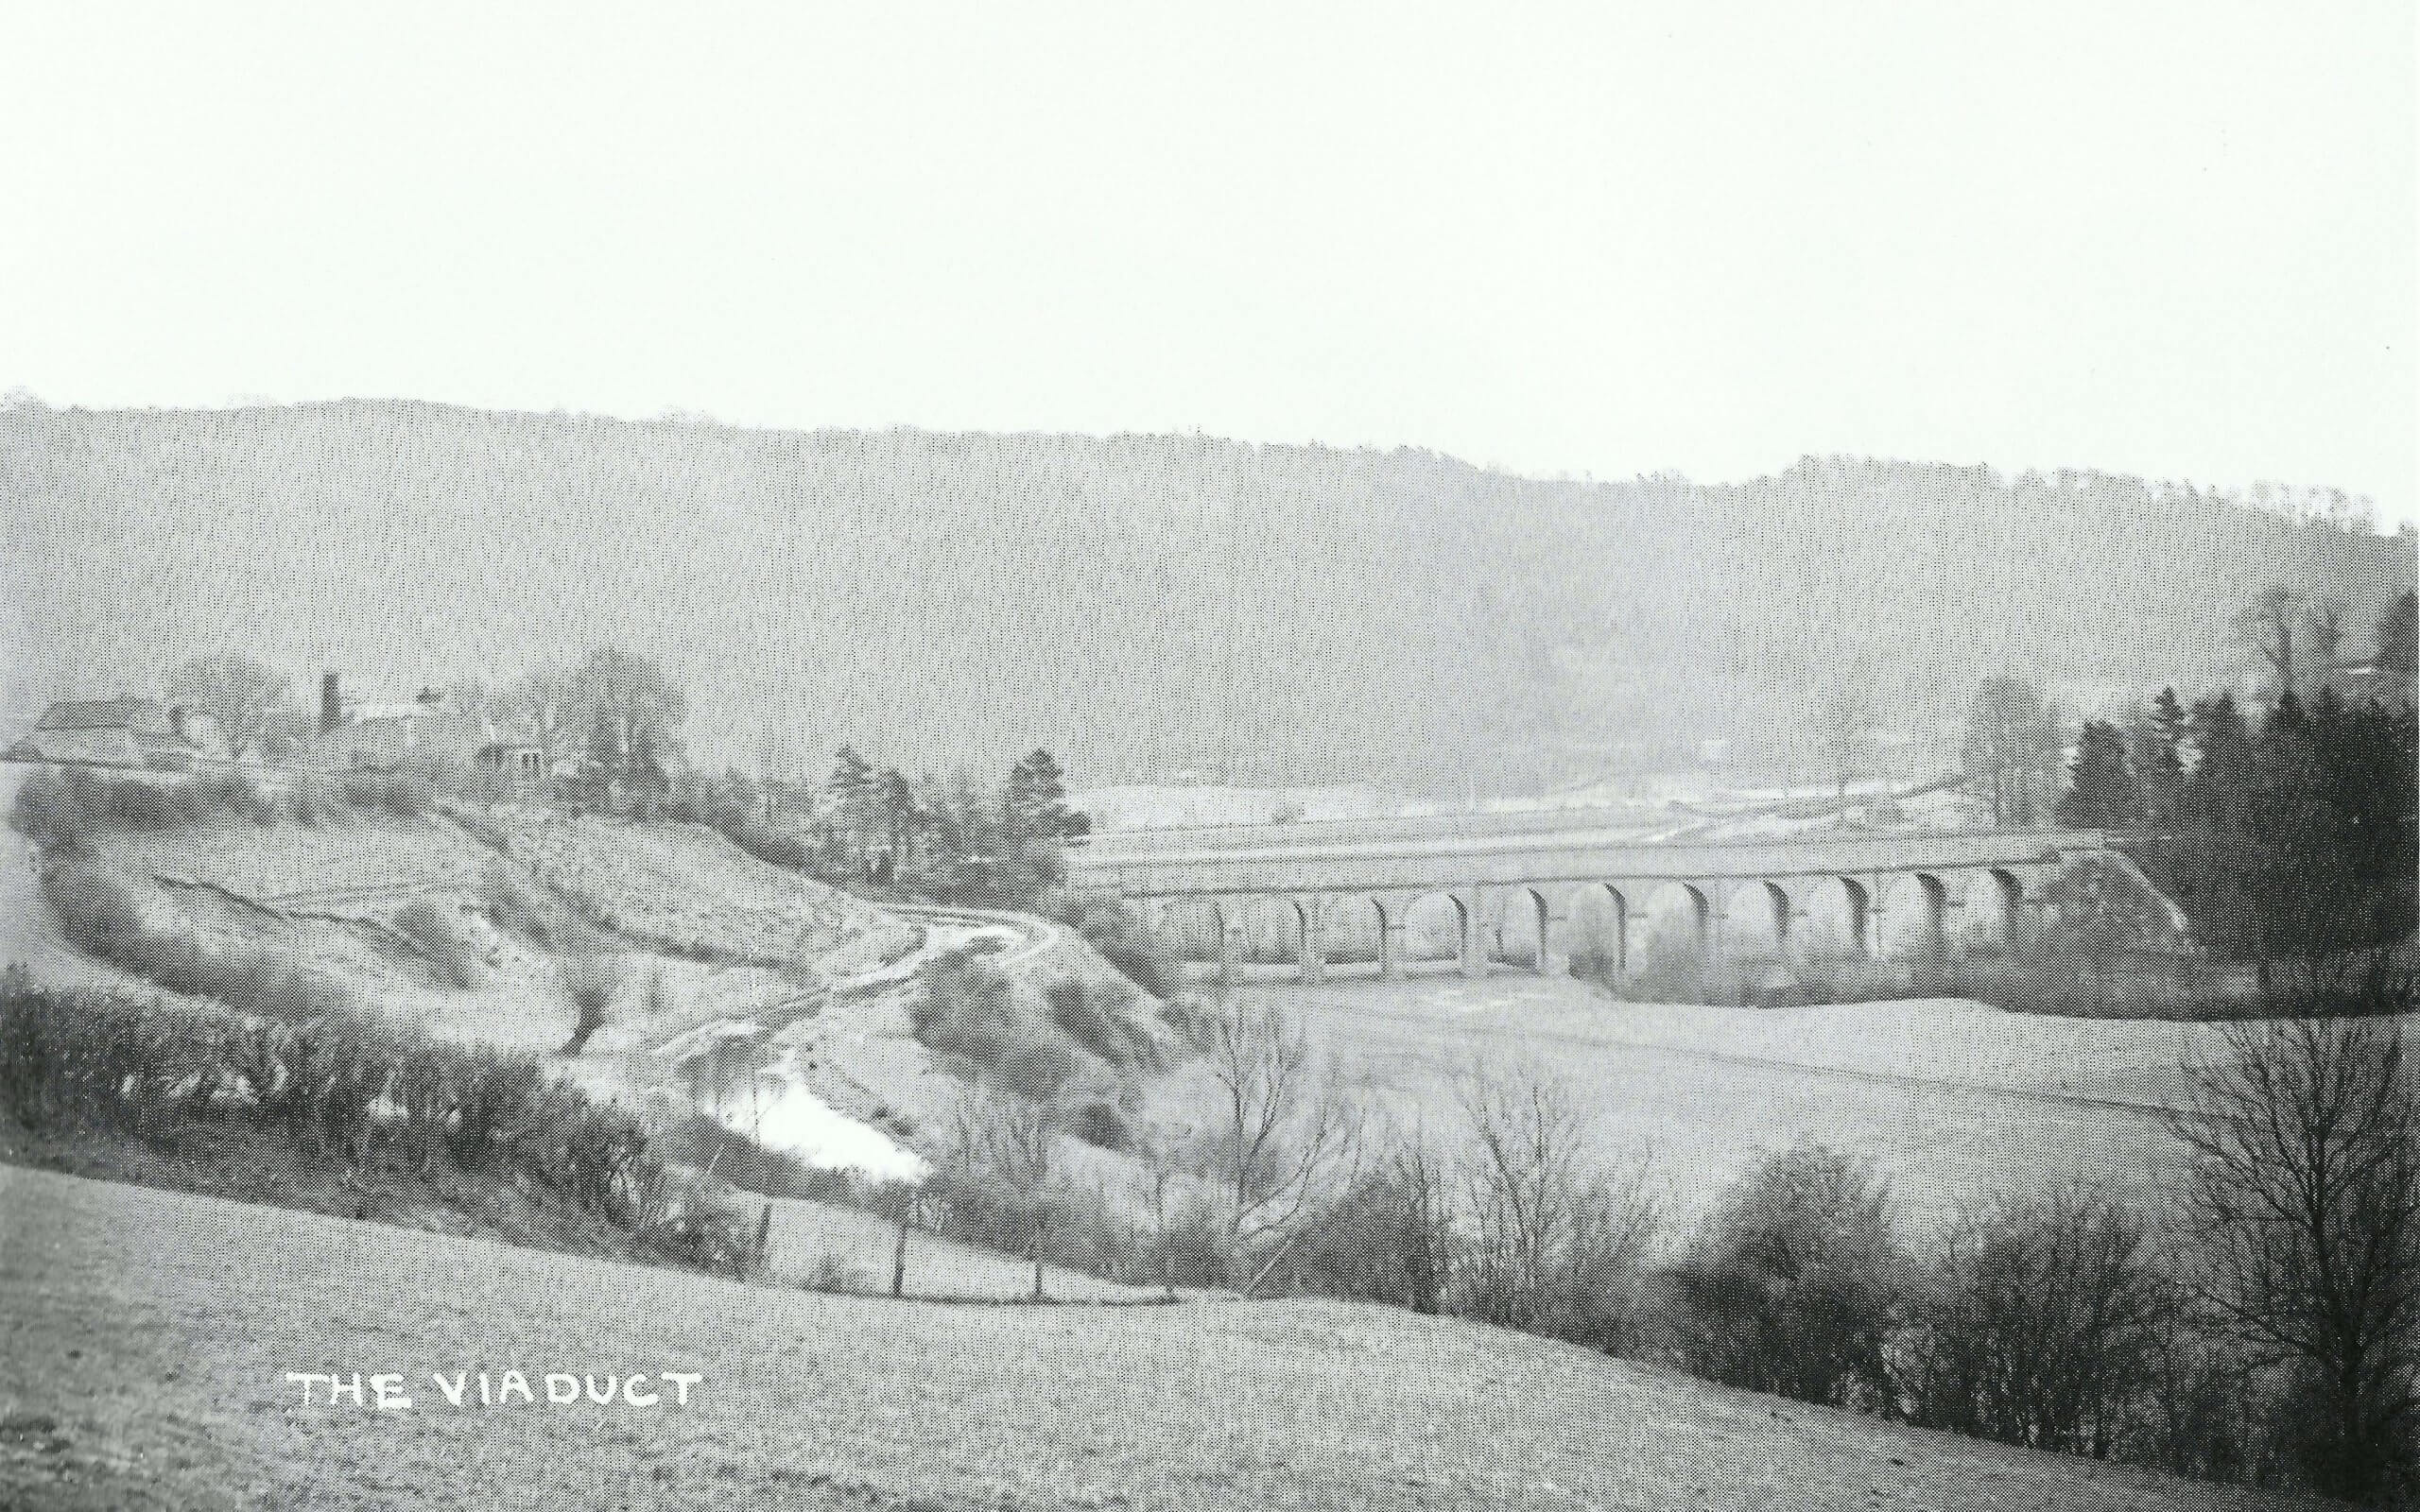 The Viaduct, Monkton Combe about 1904